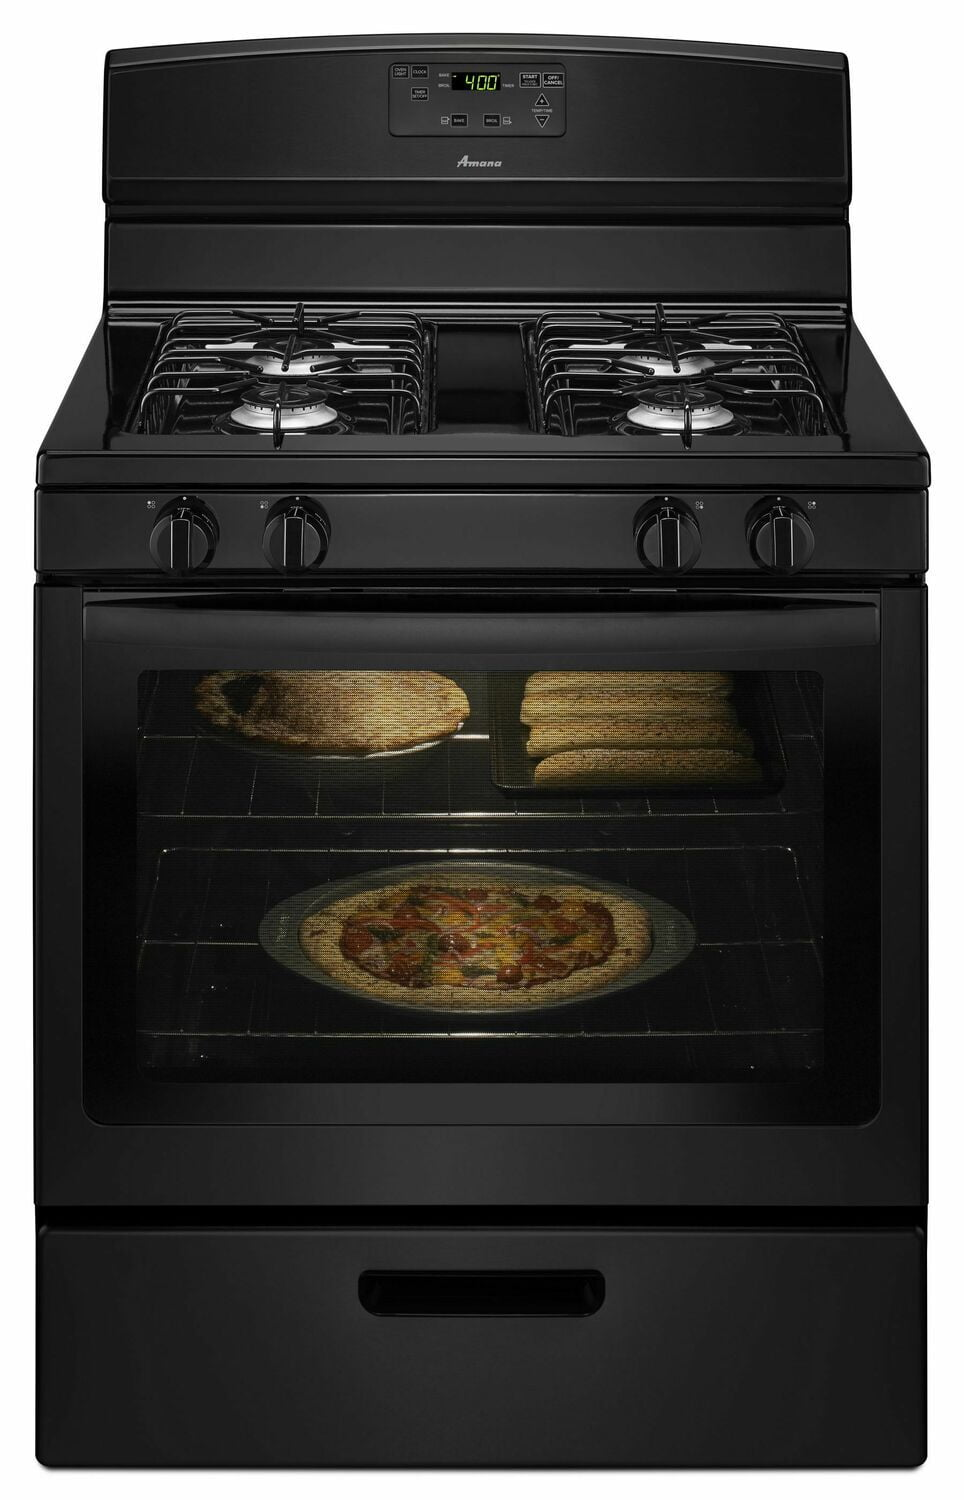 Load image into Gallery viewer, Amana AGR5330BAB 30-Inch Gas Range With Easy Touch Electronic Controls - Black